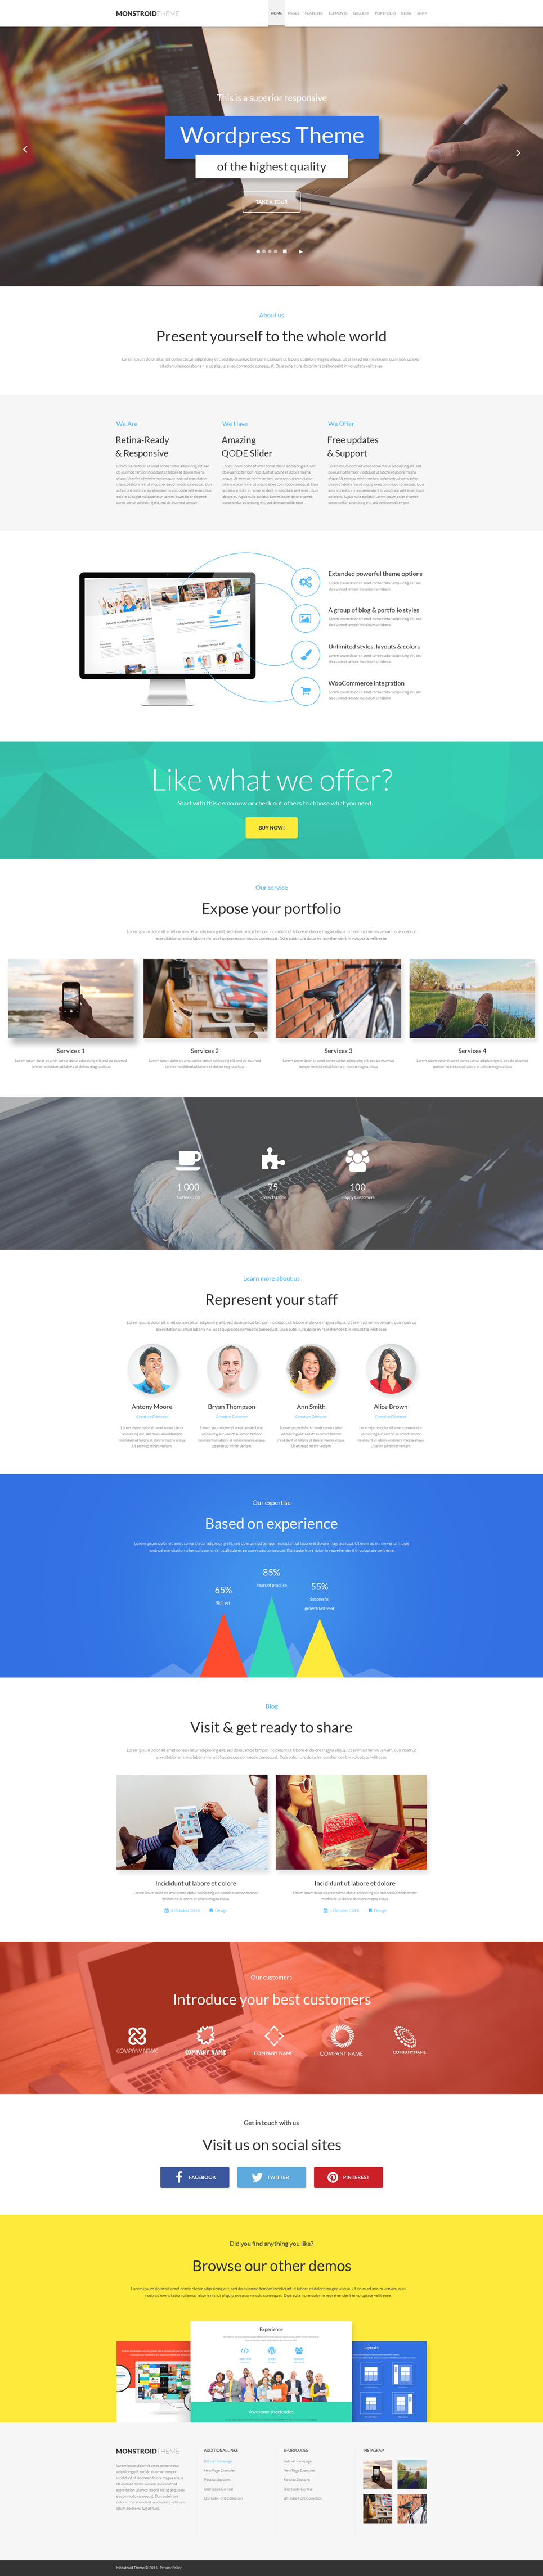 wordpress dating theme nulled Ida is a non-profit 503(c) organization that works to help stop light pollution and protect the night skies for present and future generations.